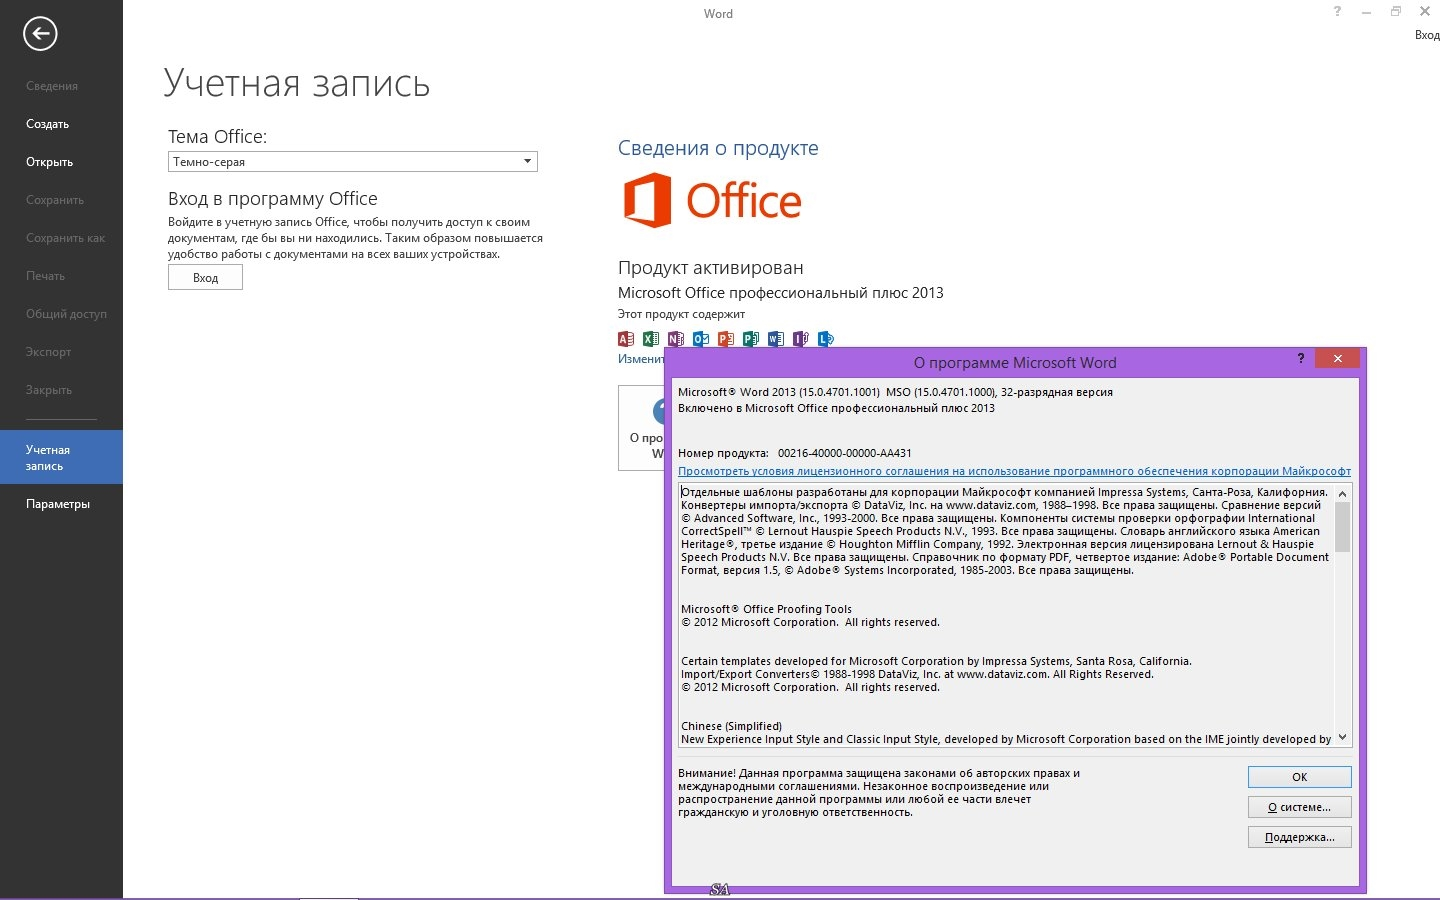 Microsoft Office 2013 SP1 Professional Plus 15.0.4701.1000 [x64] [RePack] [Shareware]